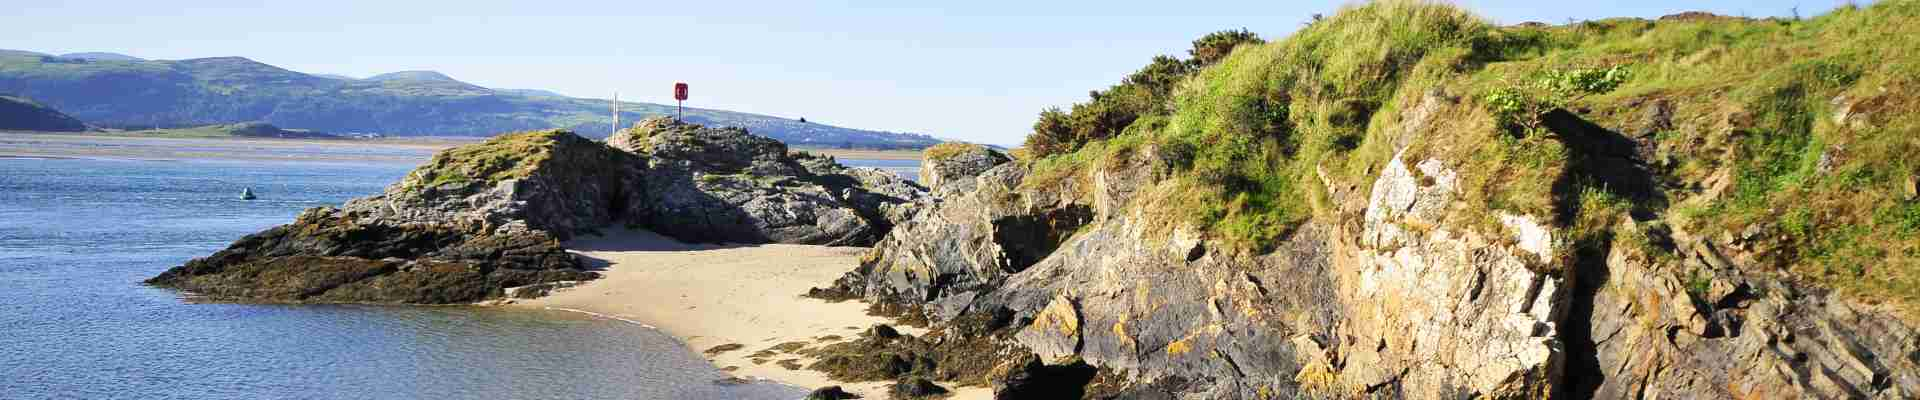 Borth y Gest Holiday Cottages